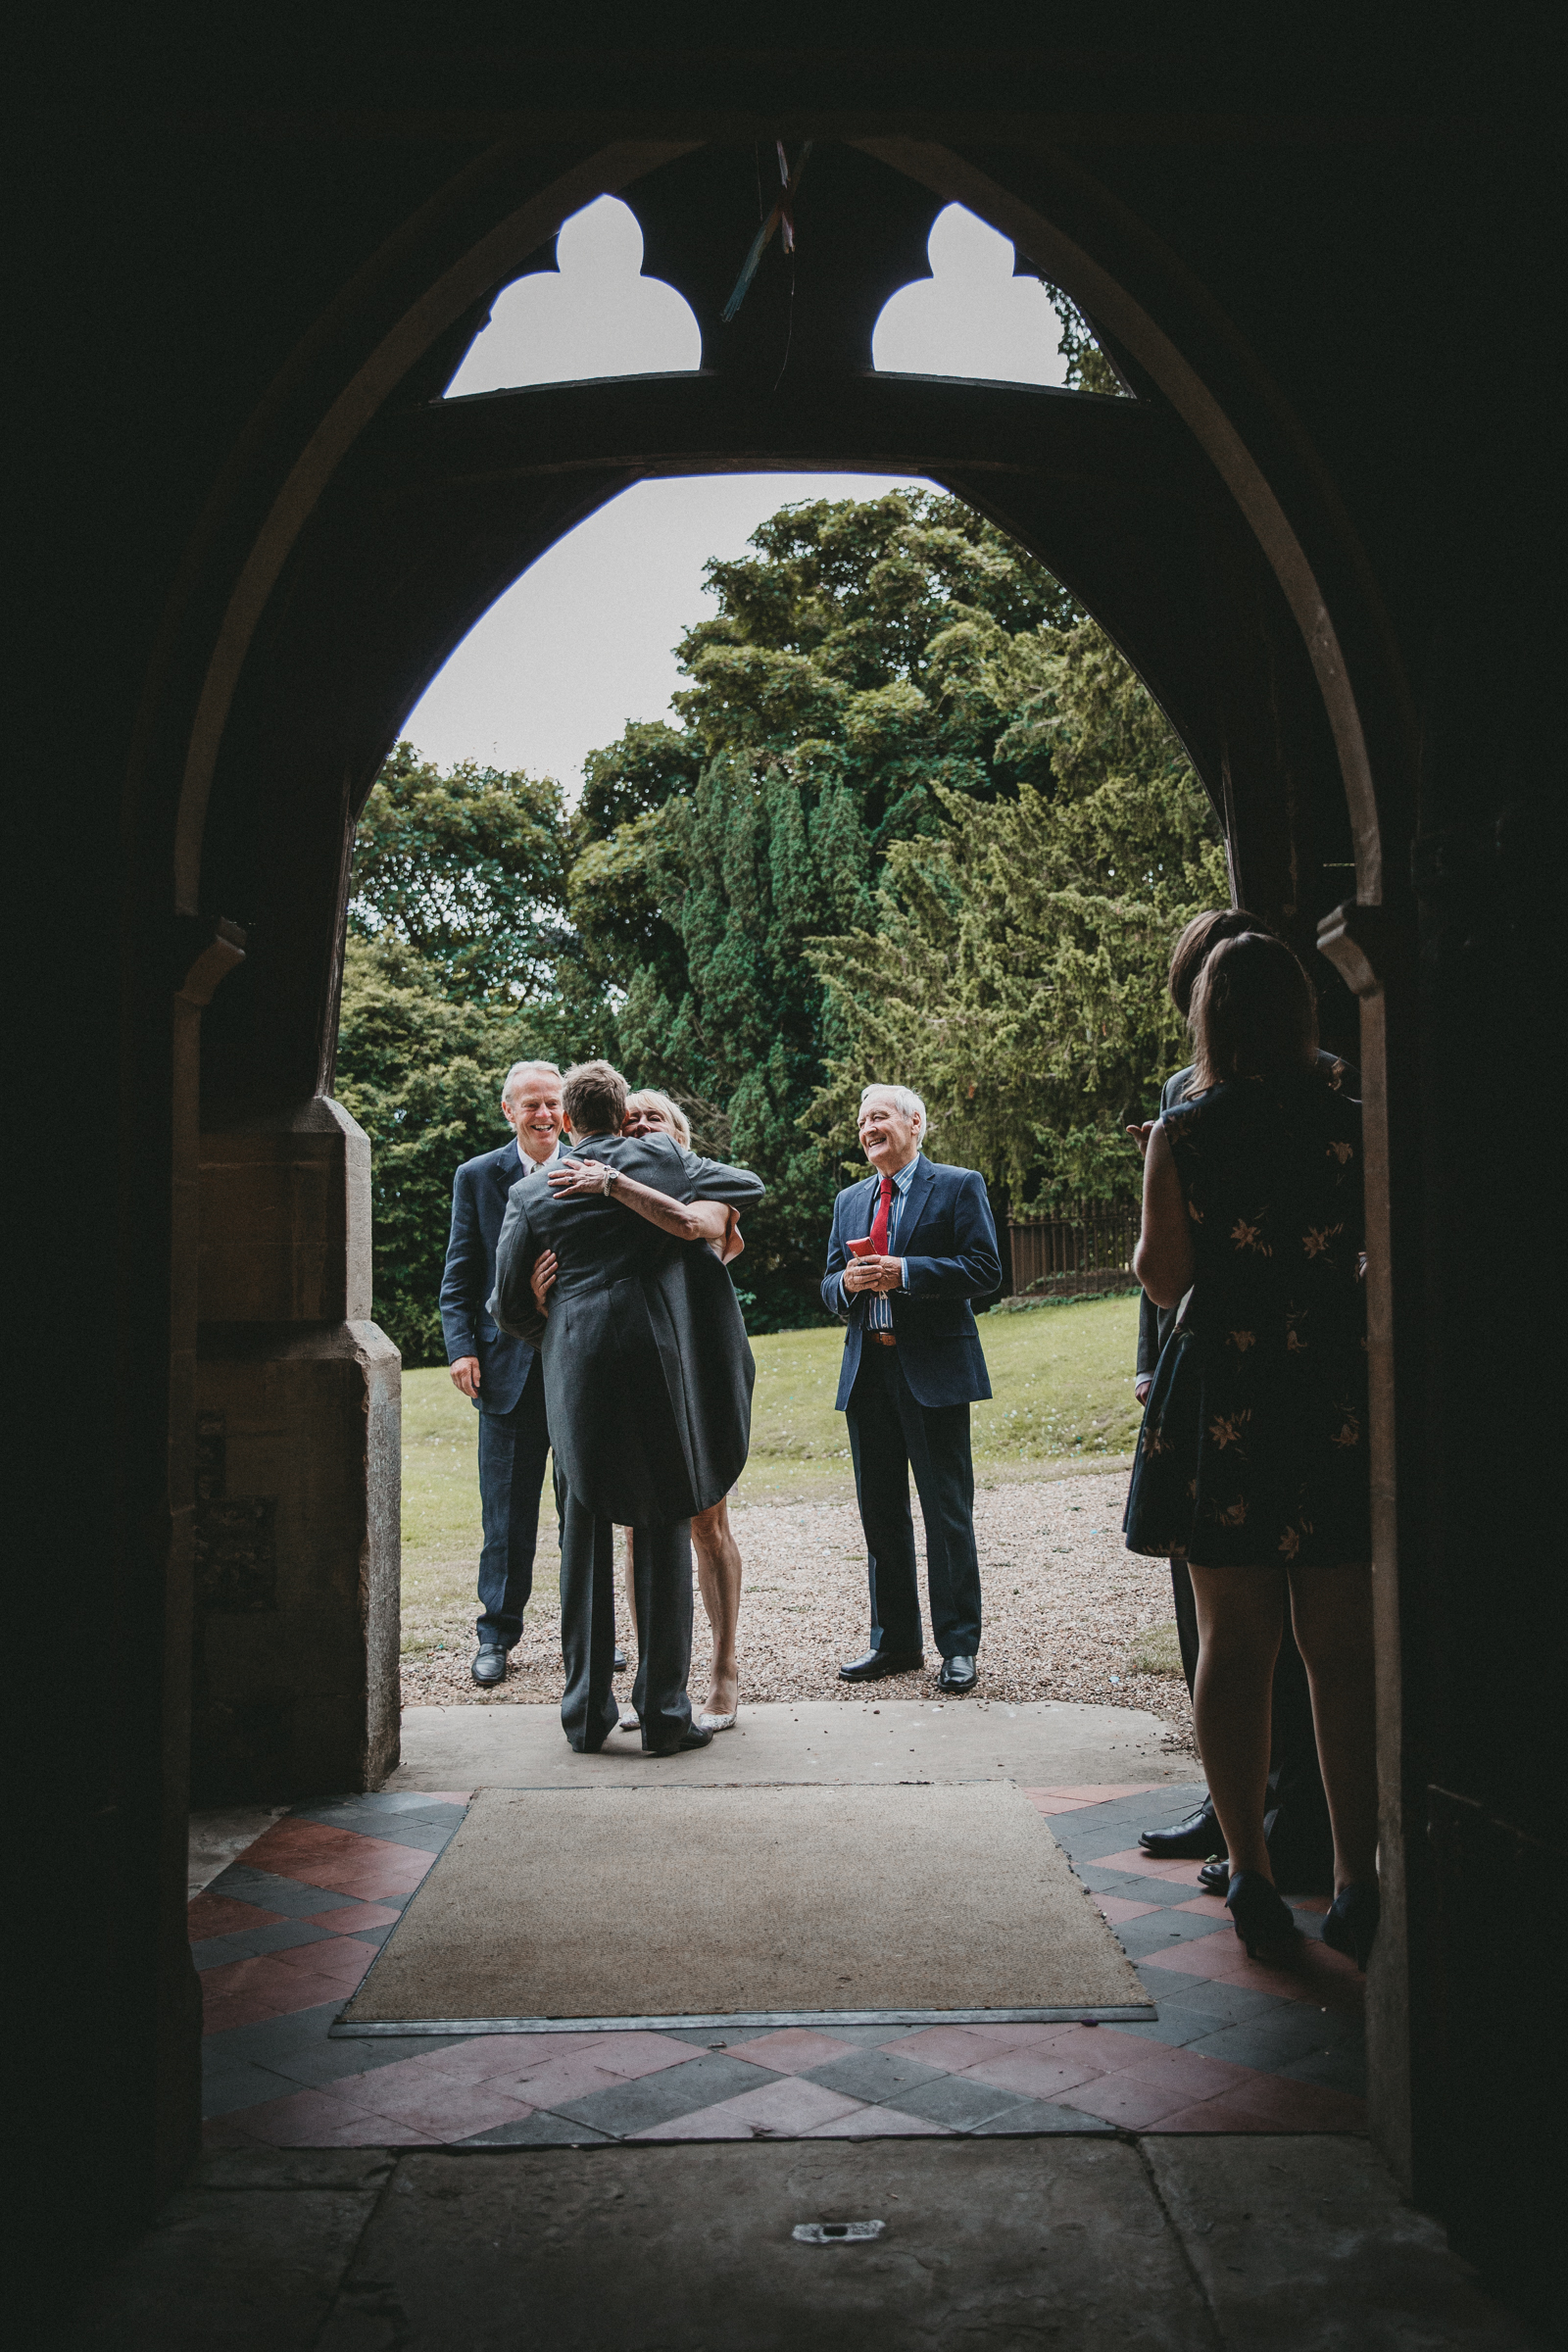 Chris Bradshaw Wedding Photography - Simon & Amanda Wedding Photos-28